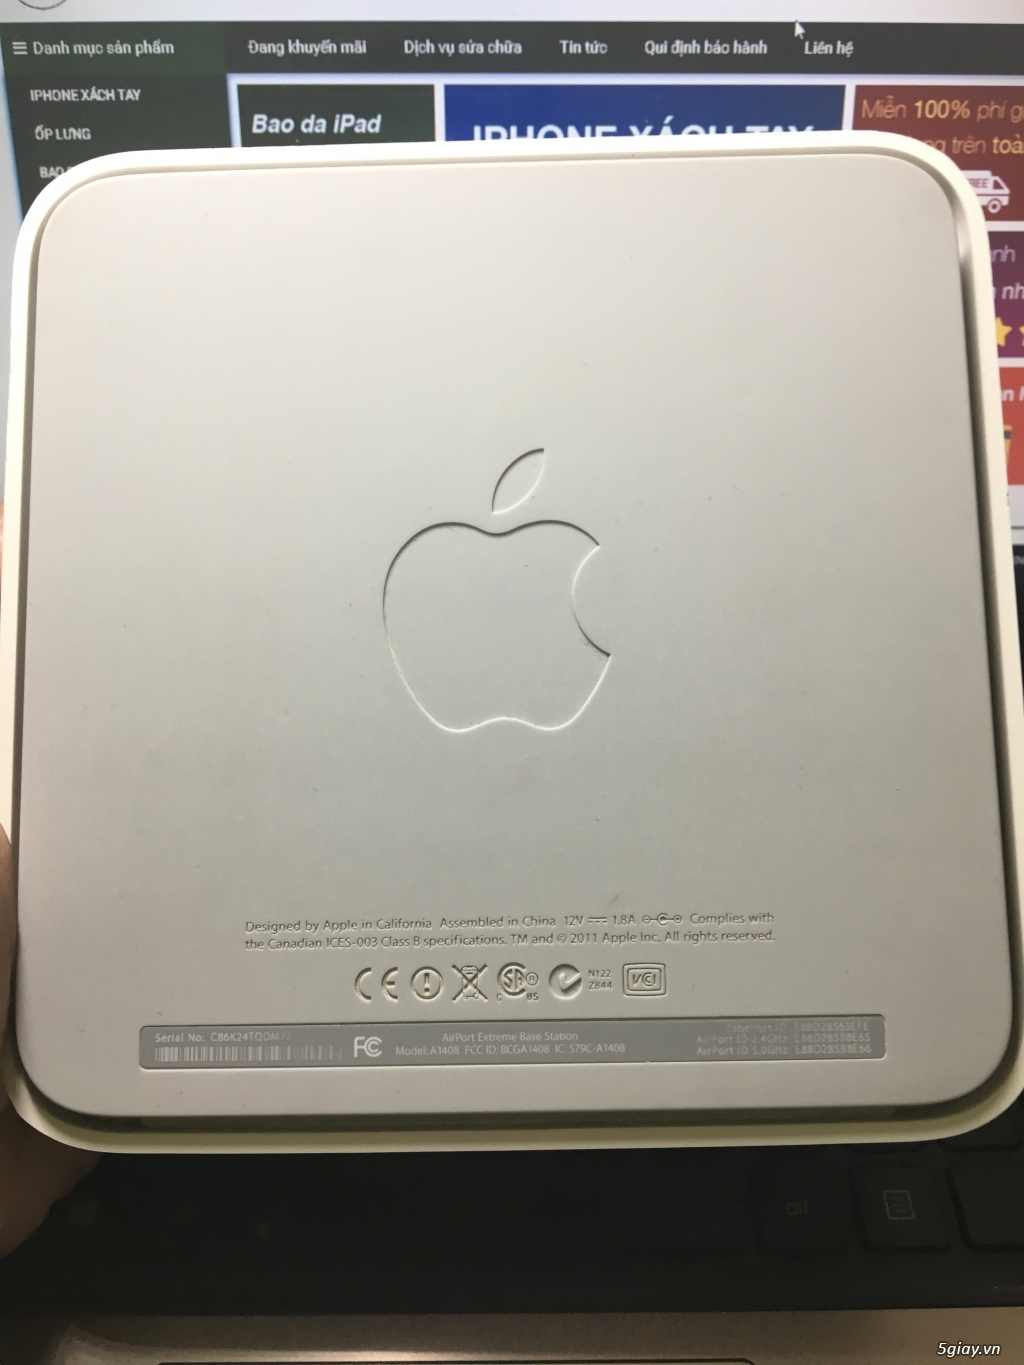 Thiết bị phát WIFI của Apple : Apple Airport Extreme - Airport Express - 23